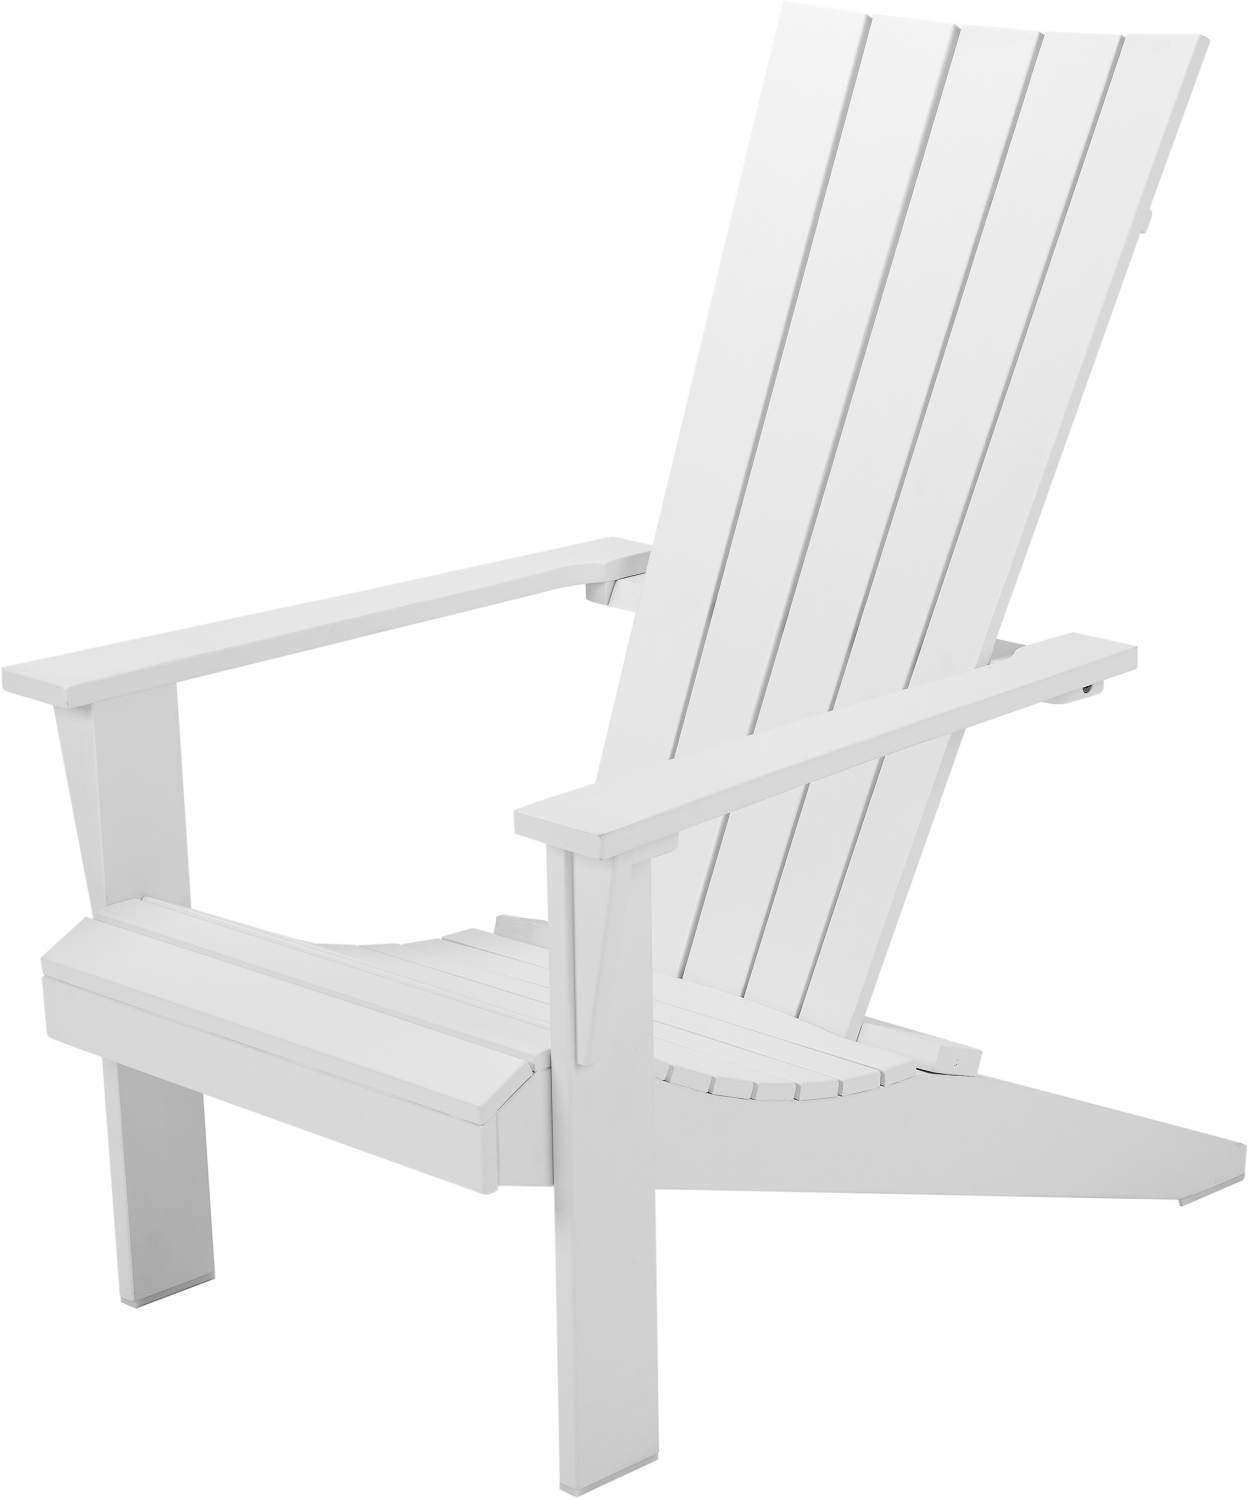 Outdoor Patio Wooden Adirondack Chair Lounge Deck Porch